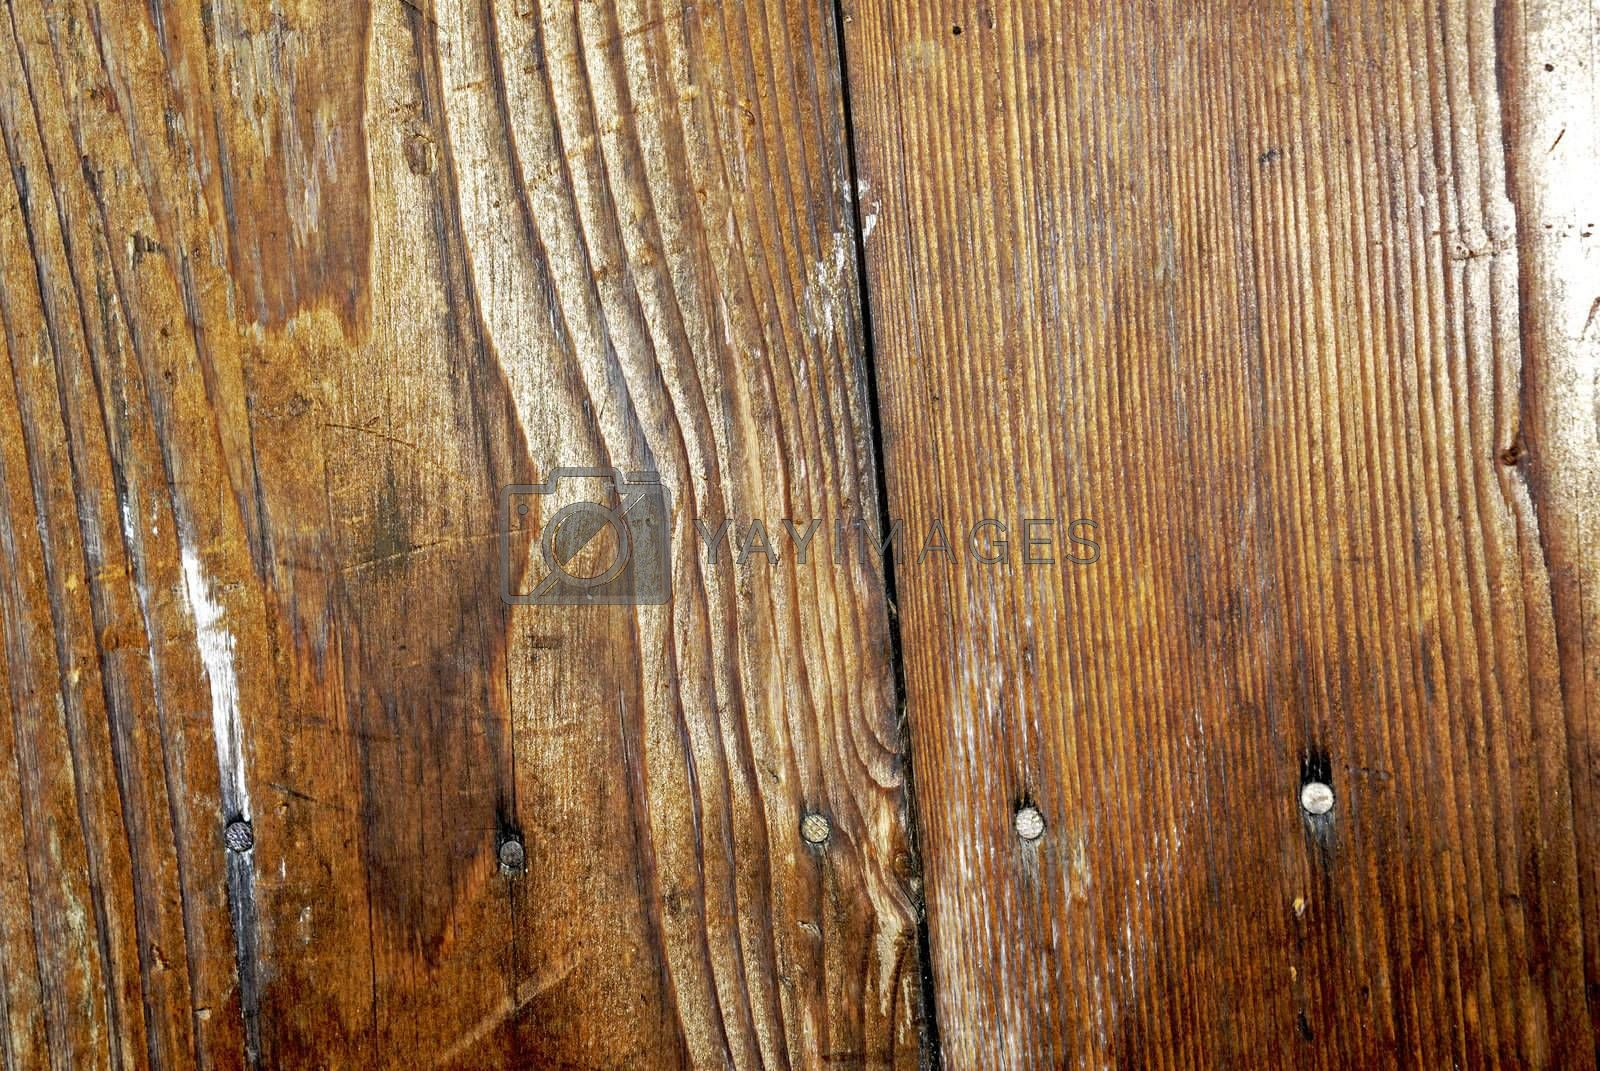 Part of old wooden fence